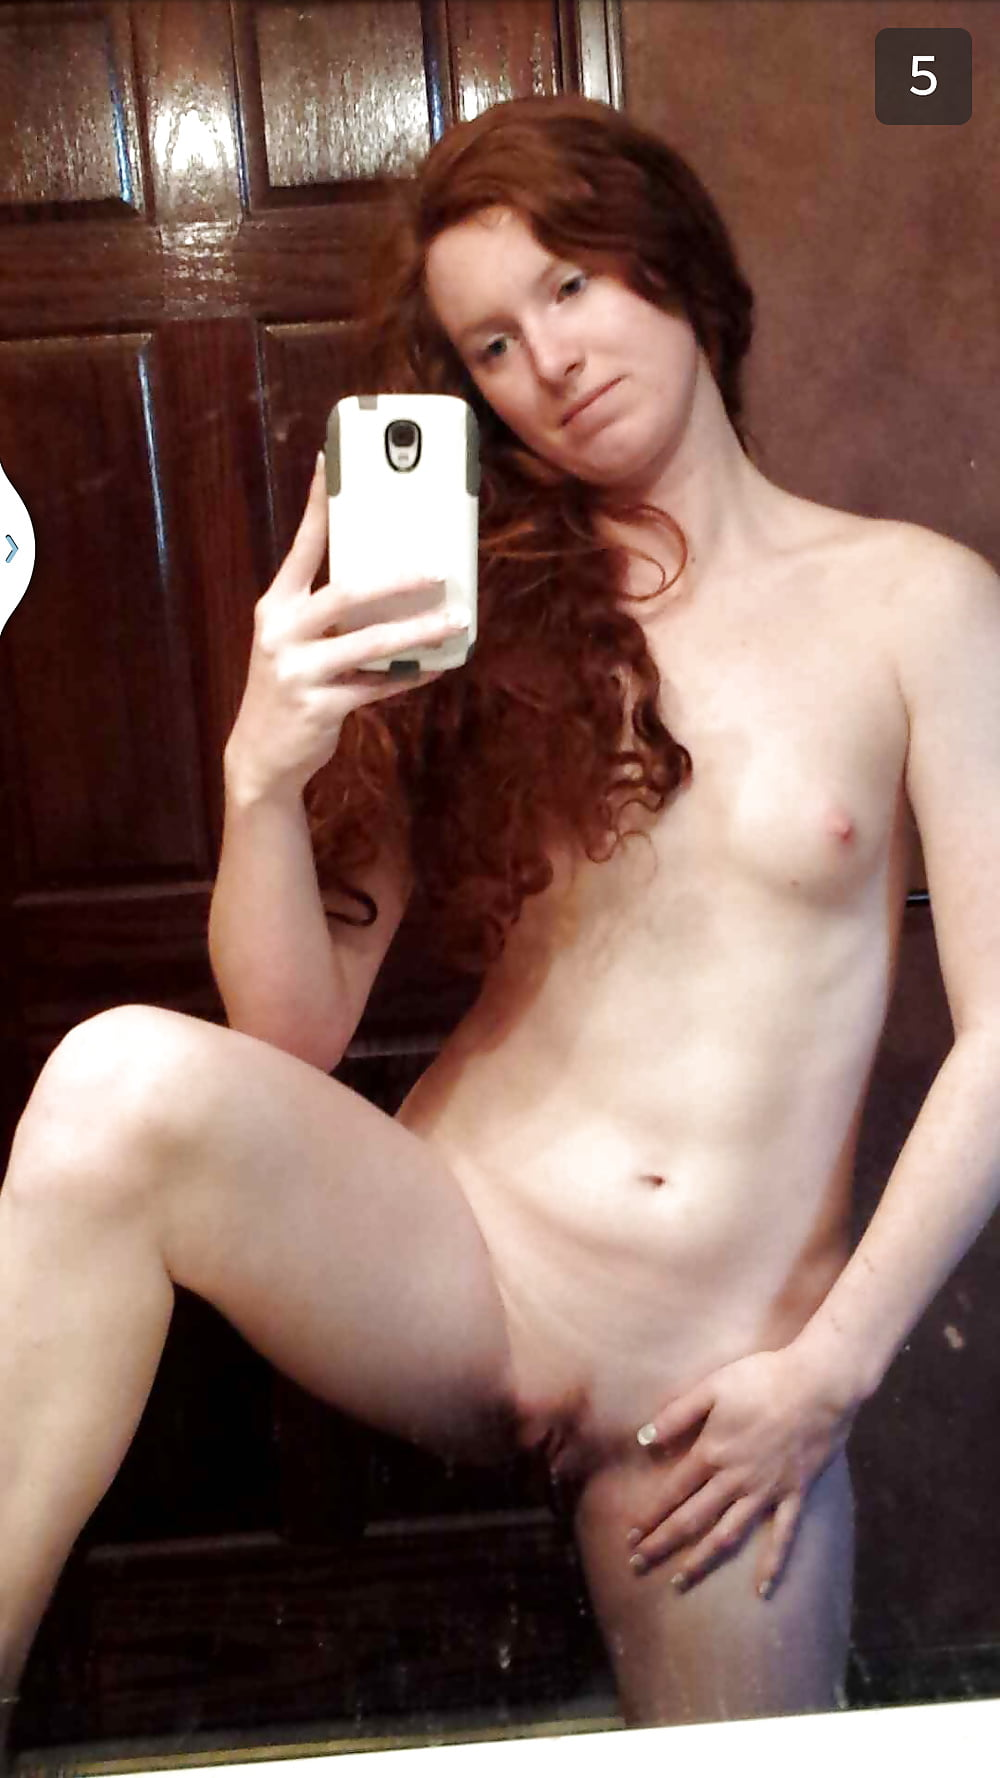 Sexy Flat Chested Ginger Milf - 15 Pics - Xhamstercom